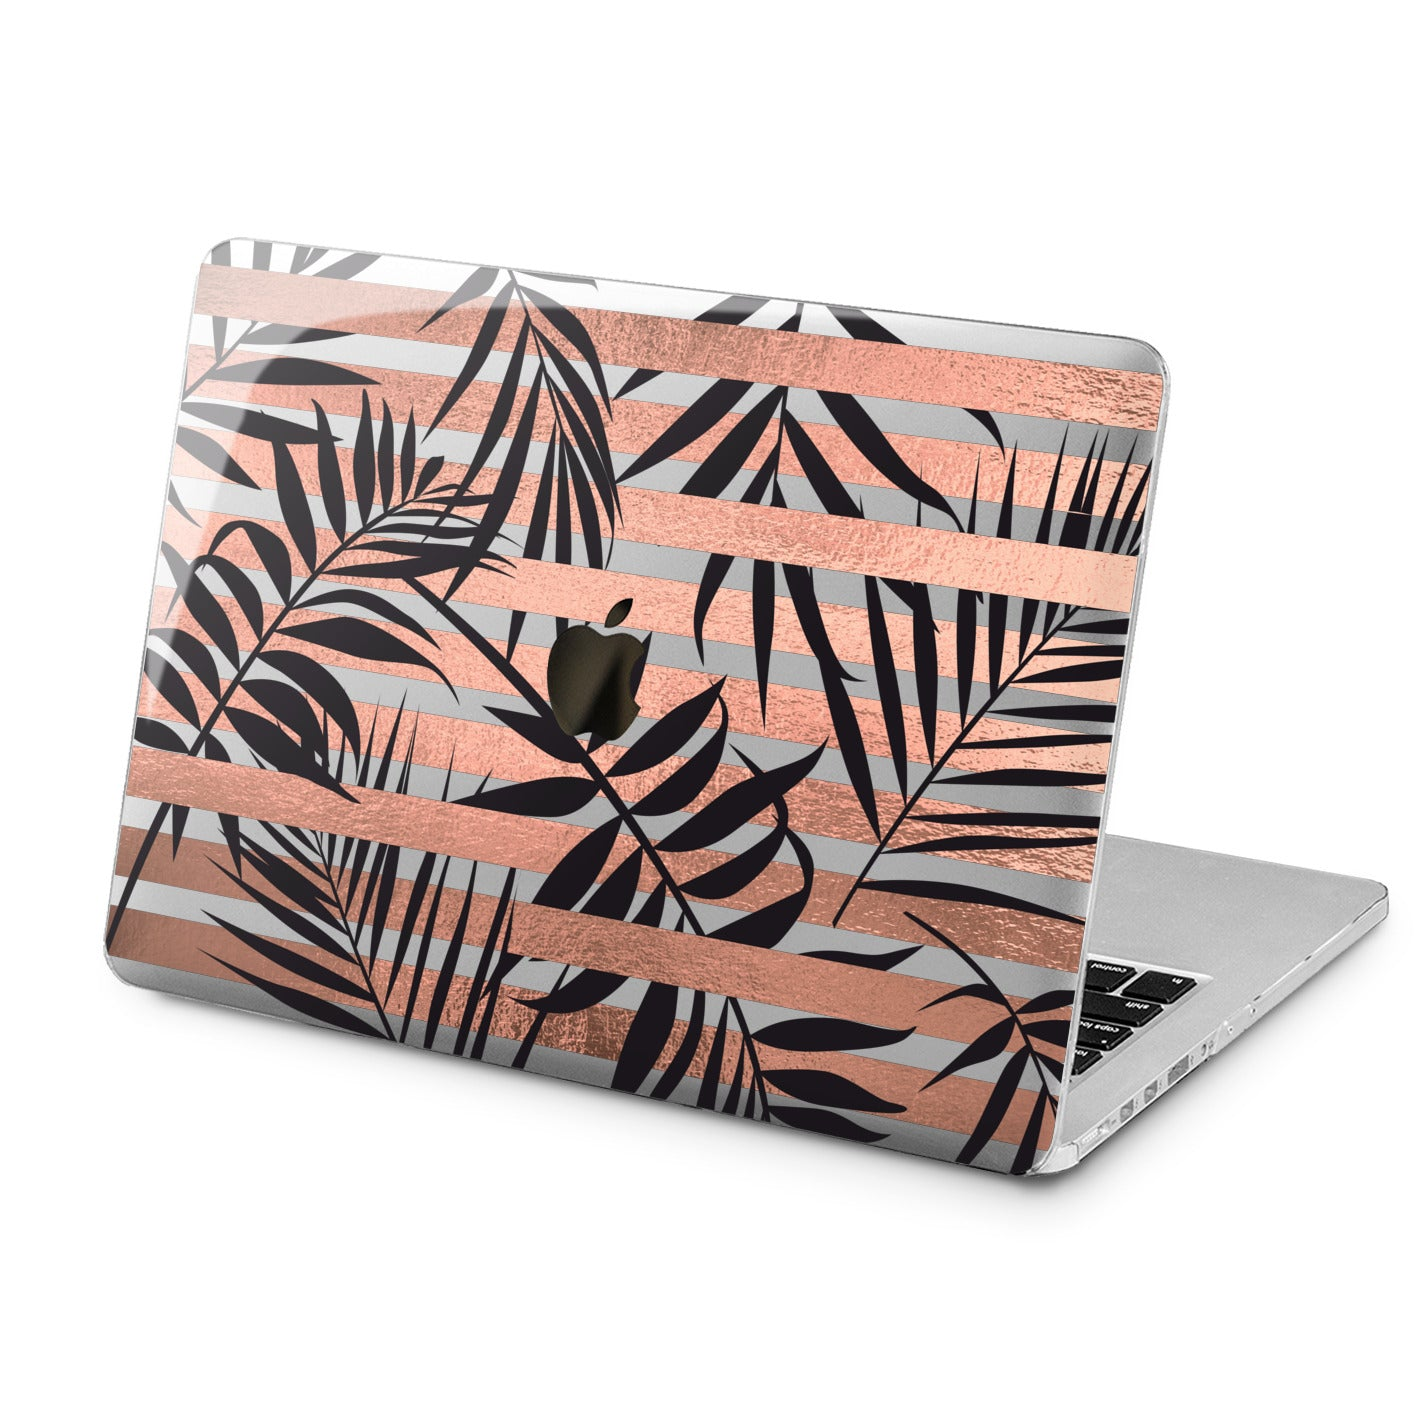 Lex Altern Lex Altern Striped Leaves Case for your Laptop Apple Macbook.